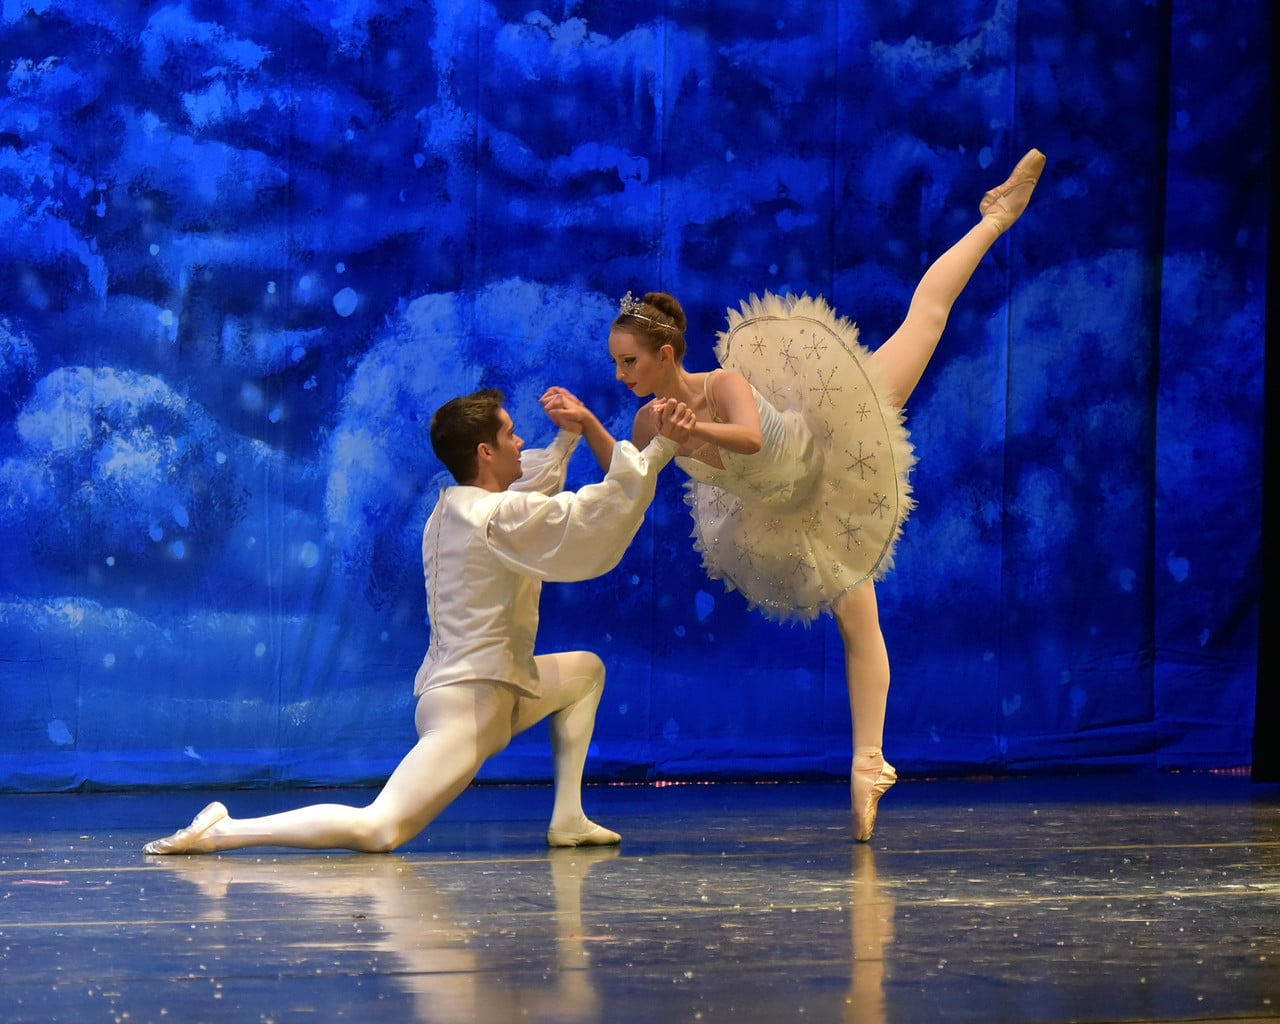 Two dancers, one man and one woman, in front of a blue backdrop in The Nutcracker Ballet